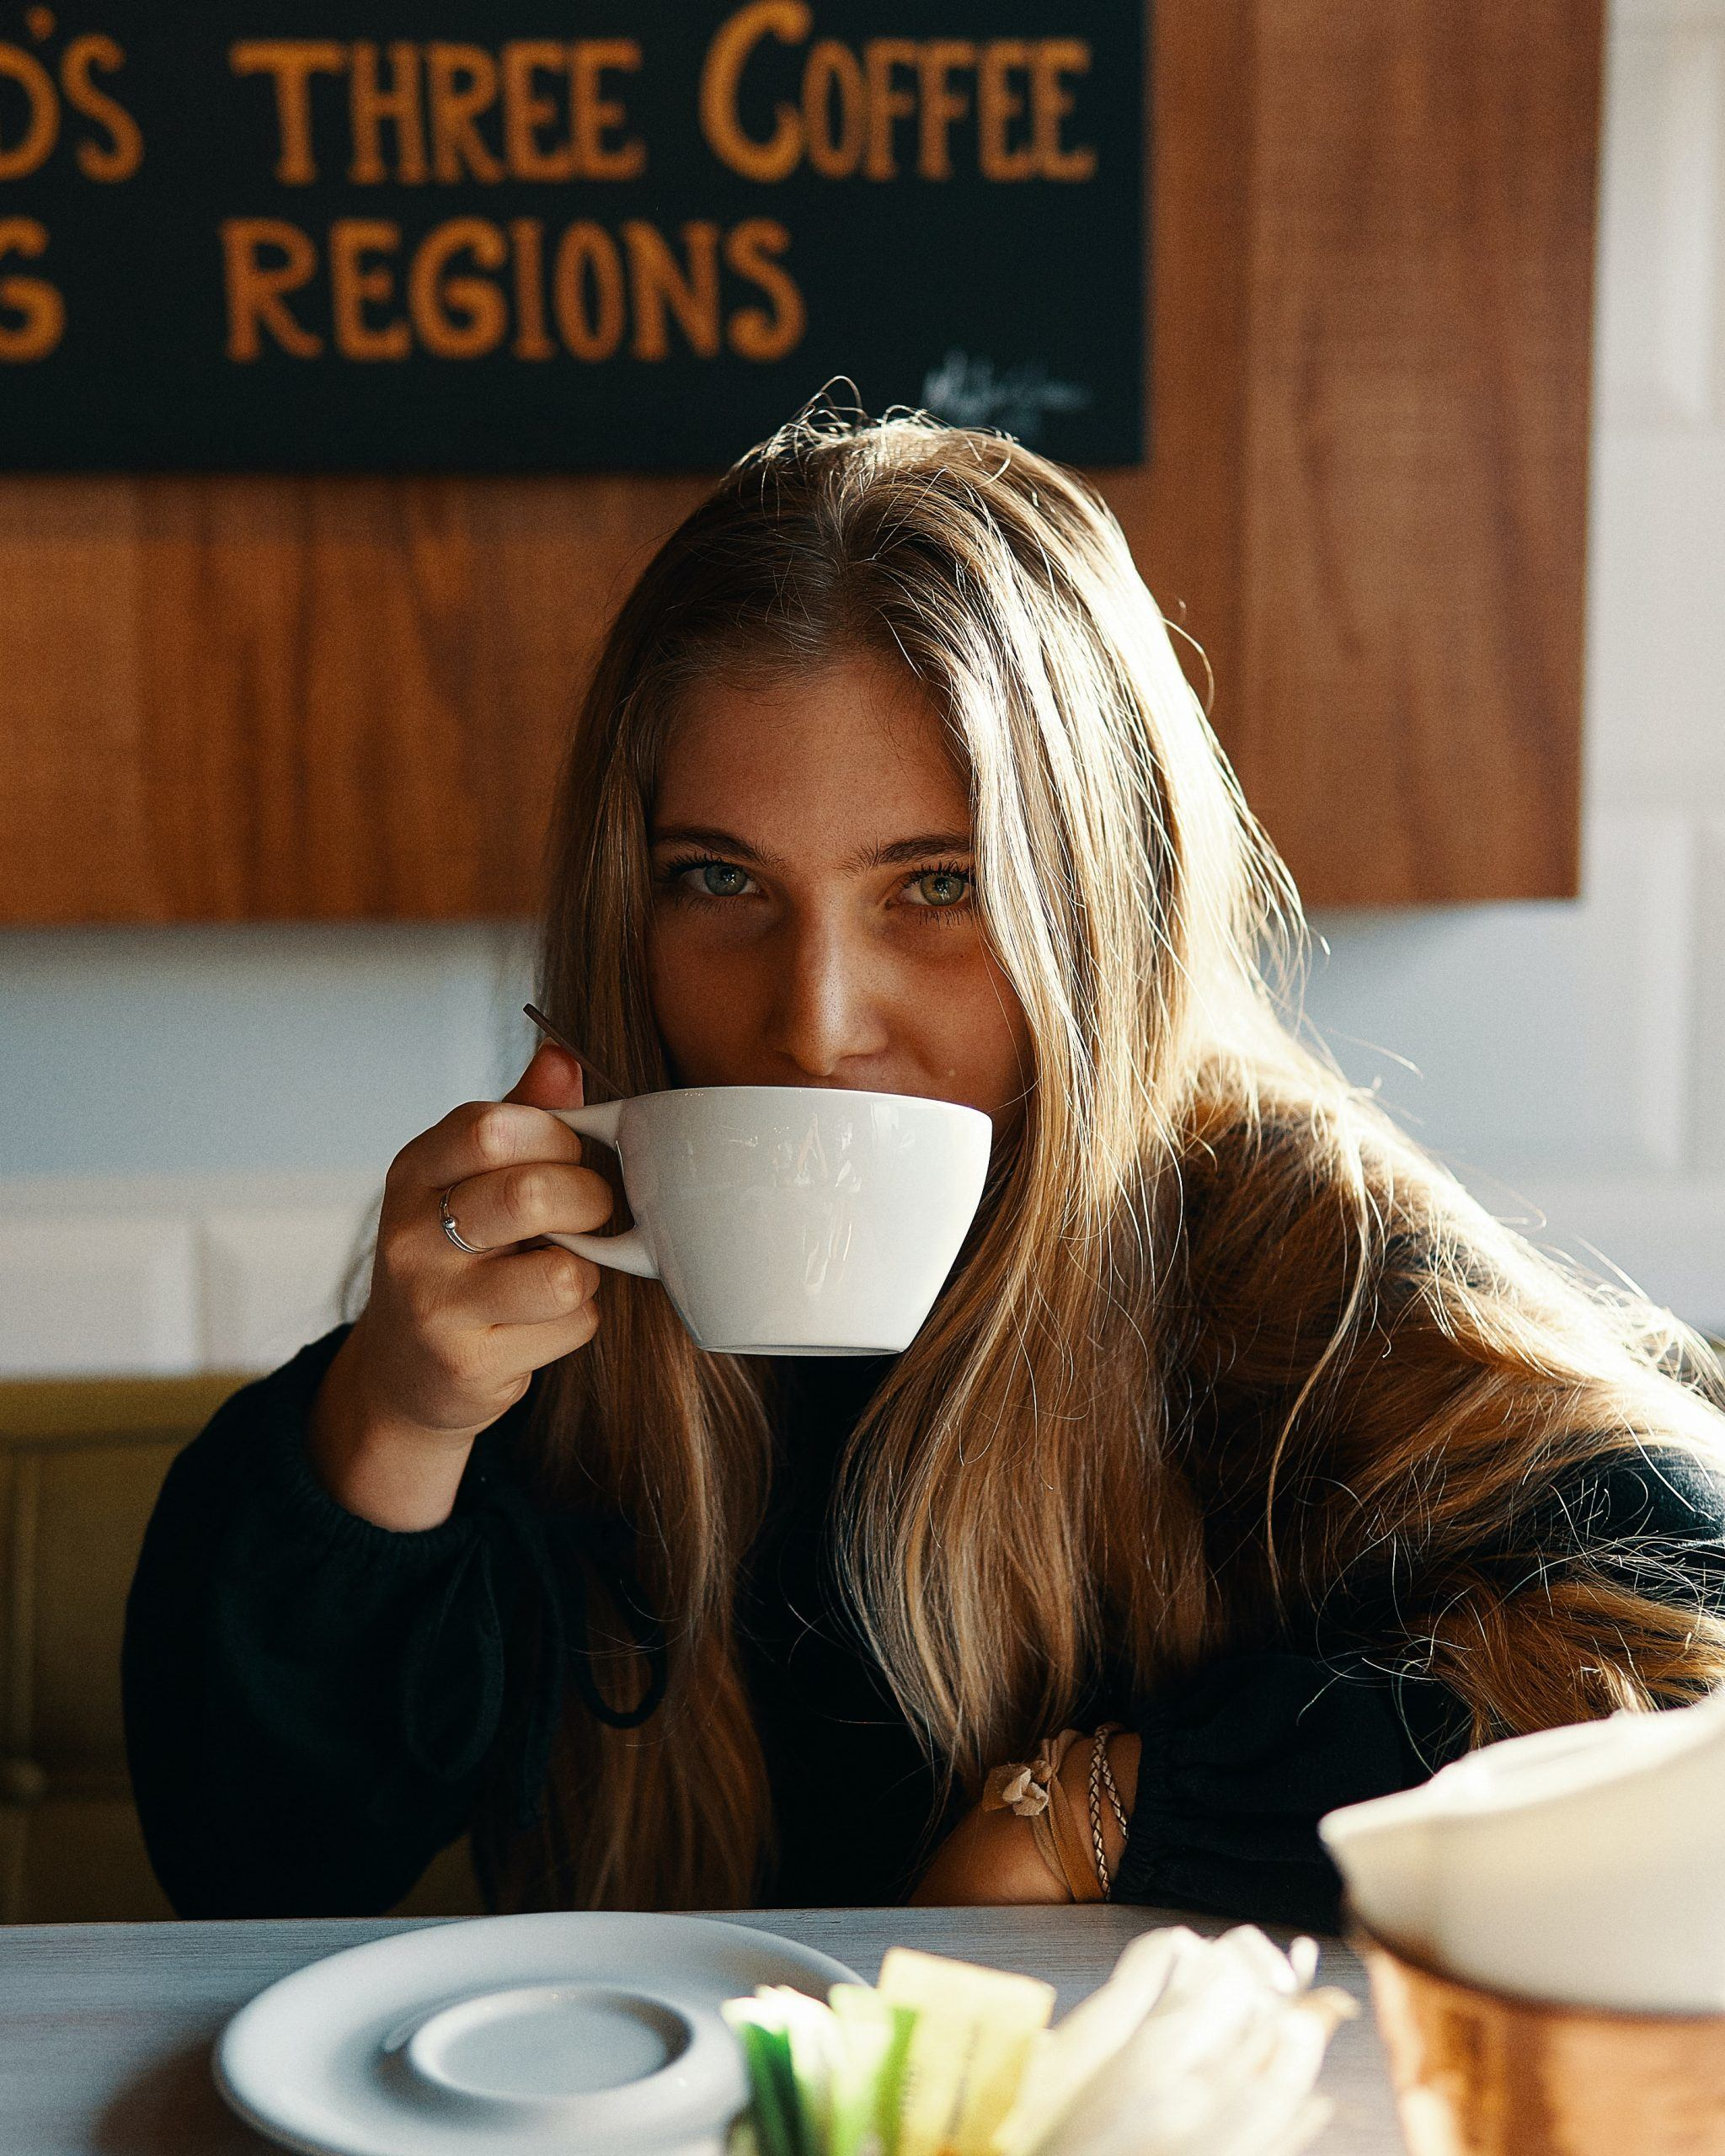 A woman and a cup of coffee